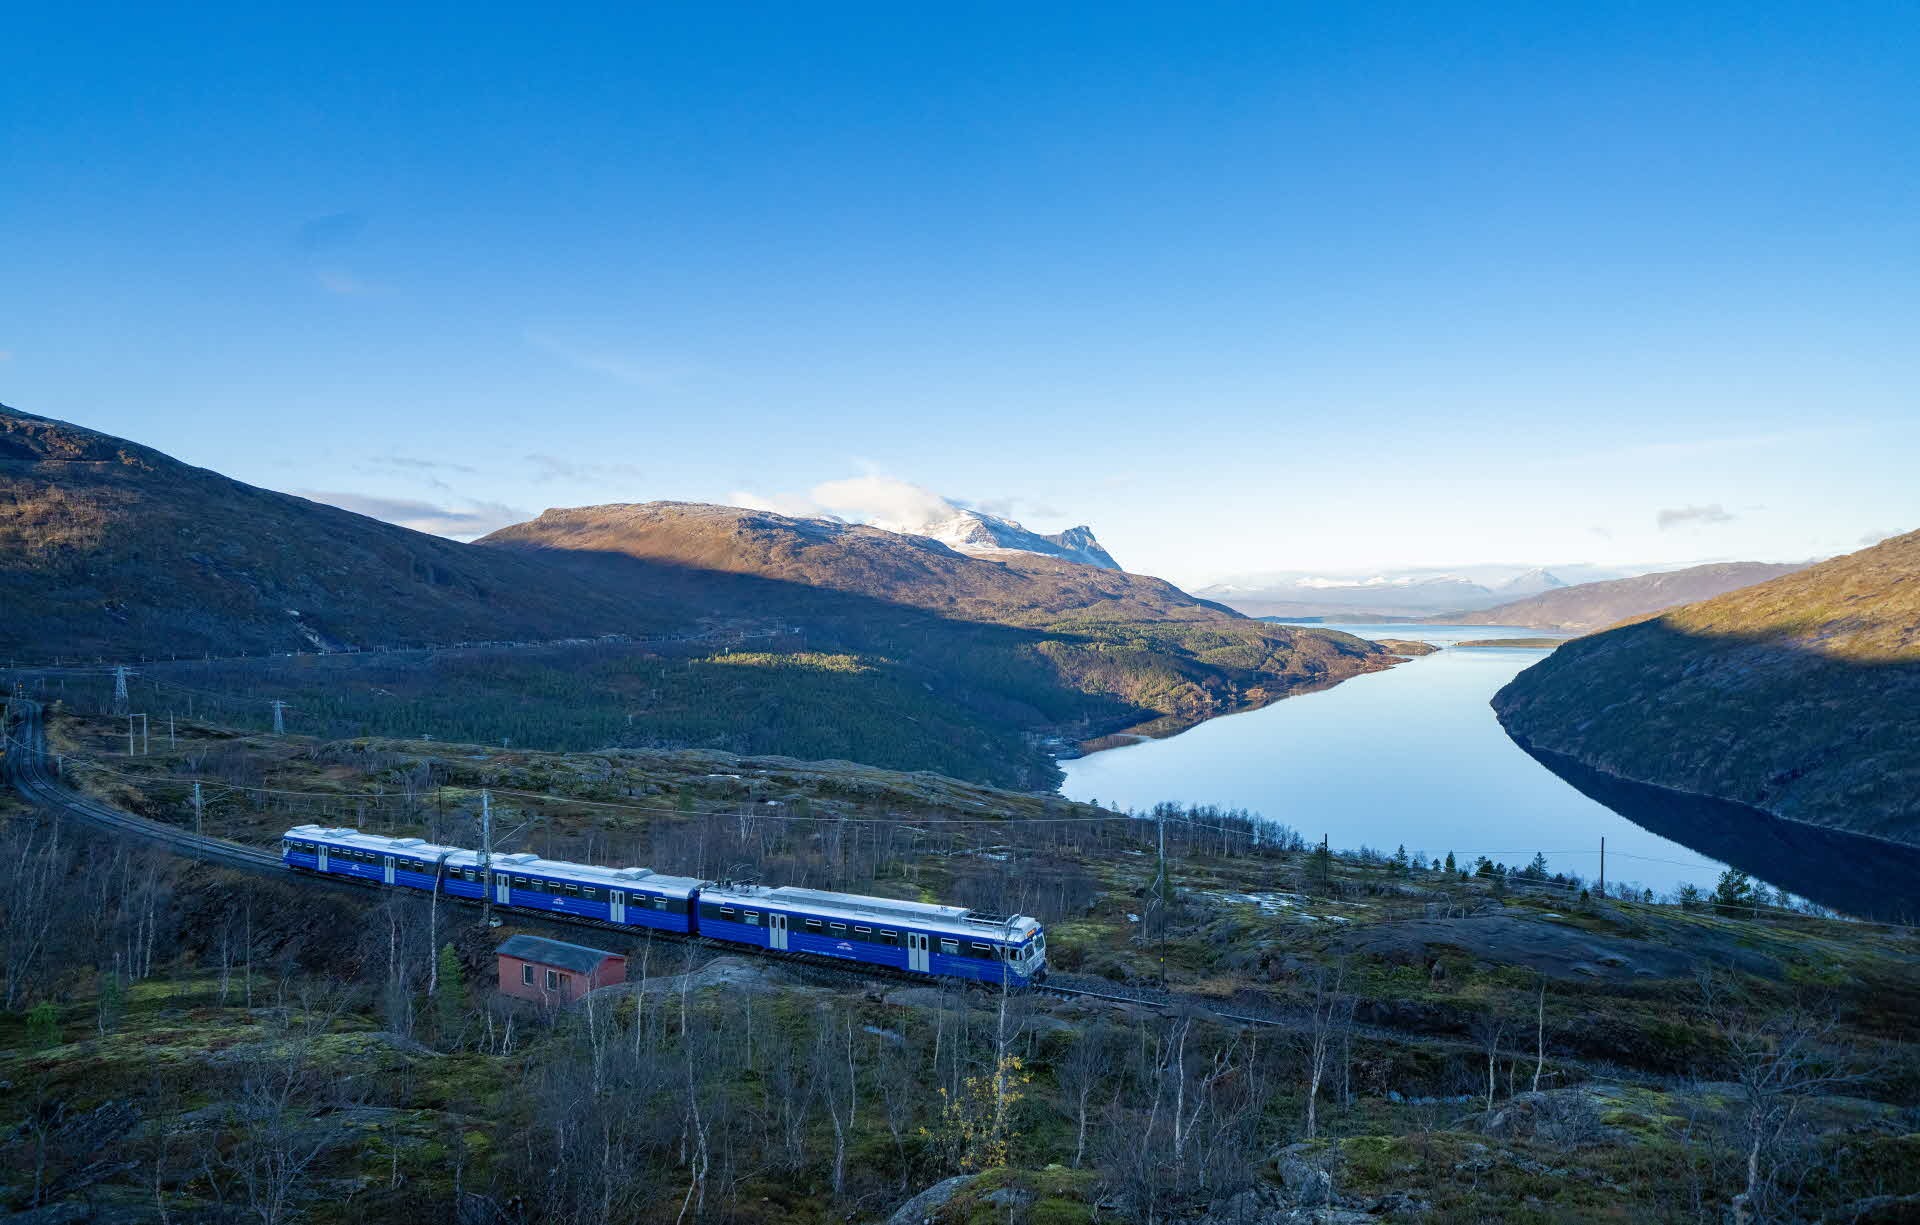 The Arctic Train passing a red little cabin on Ofot railway direction towards Narvik with Rombakfjord and mountains in background